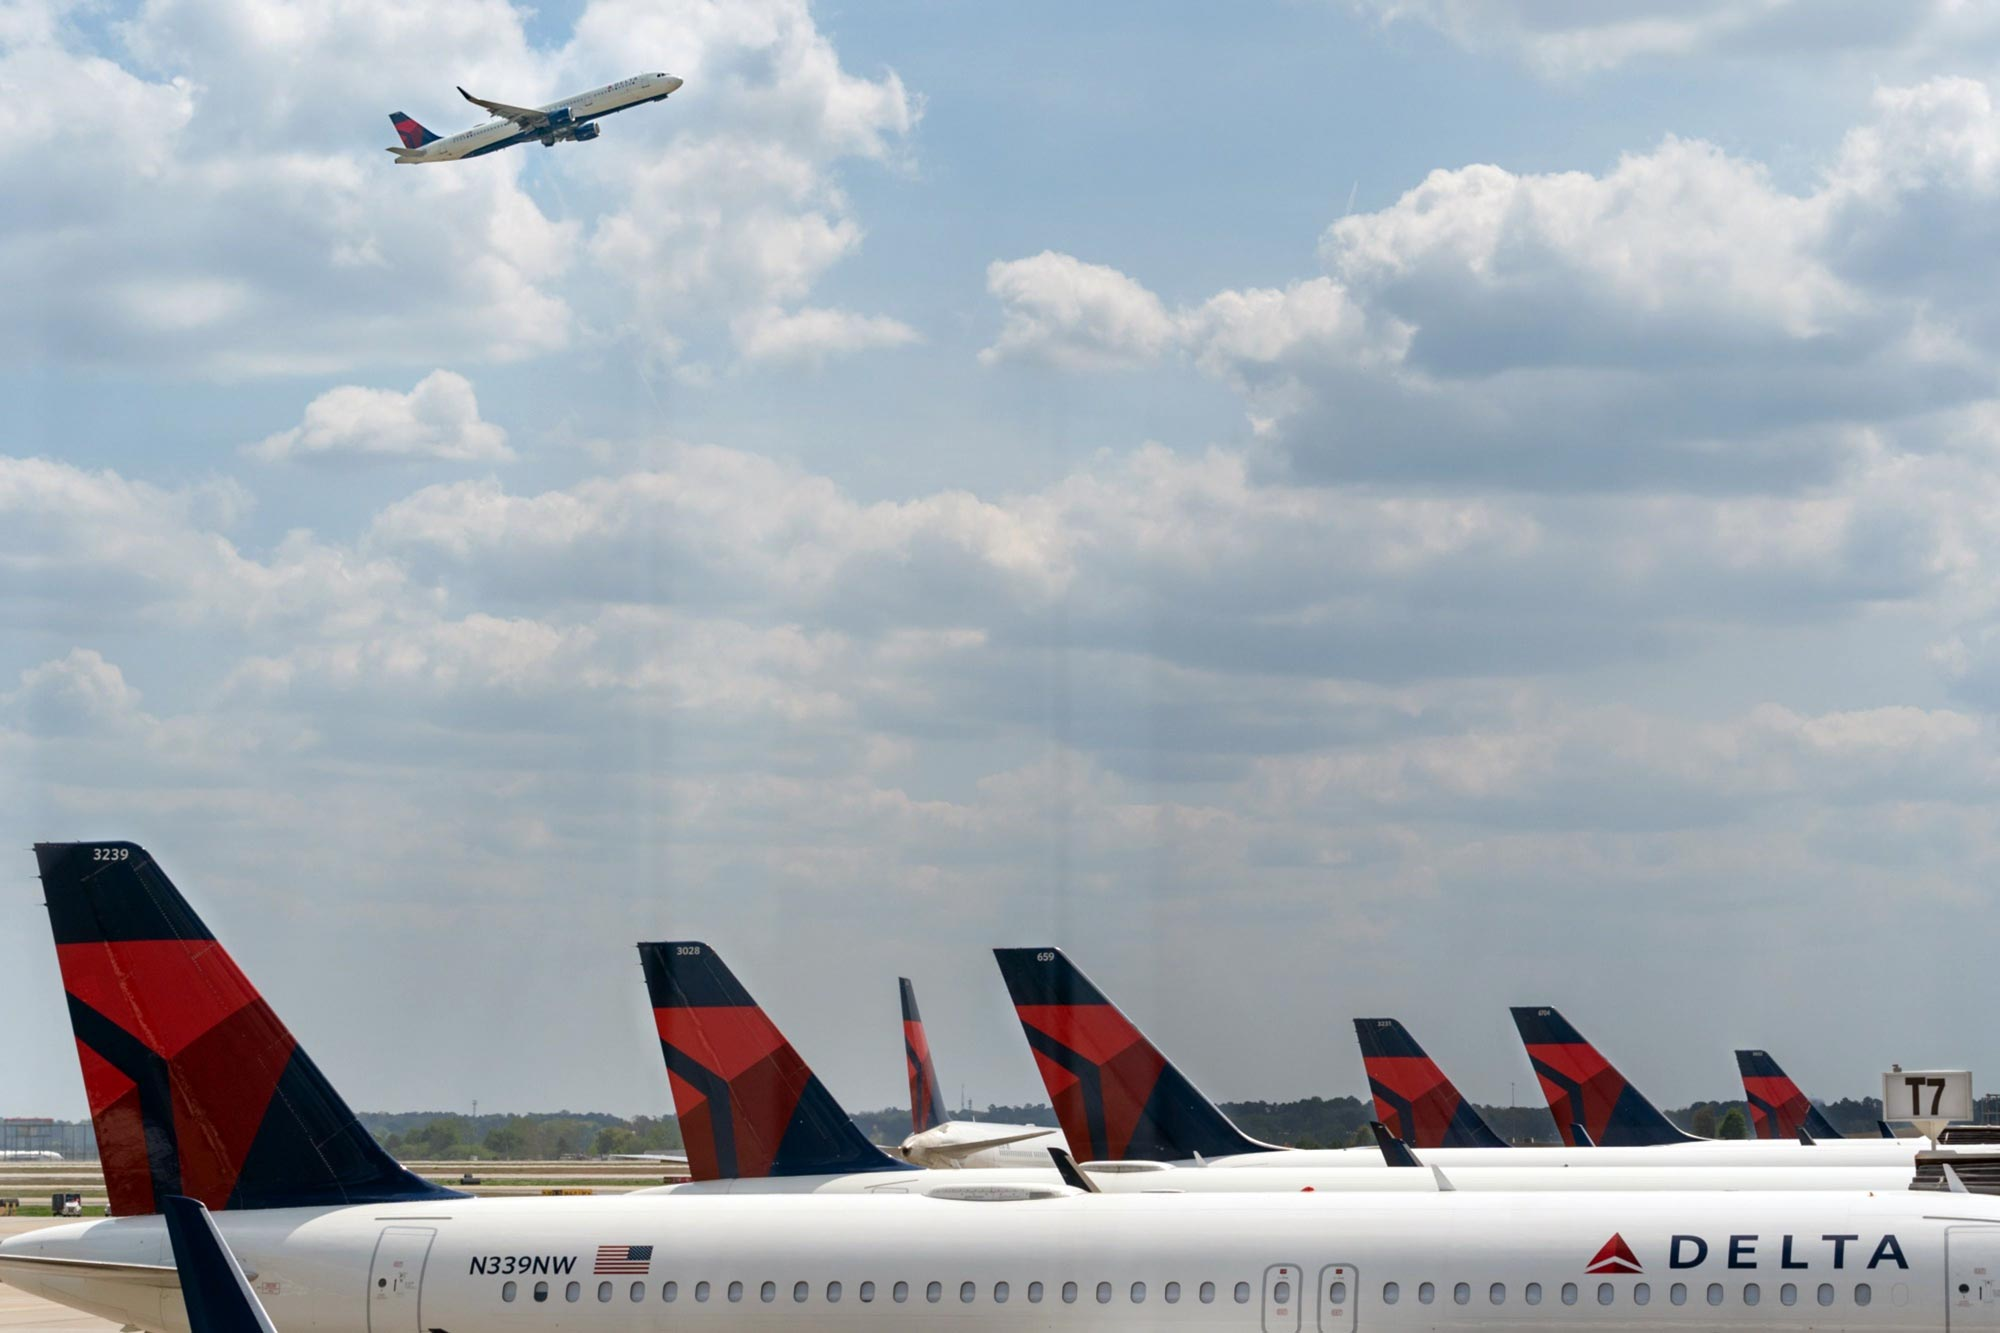 The Week Ahead: Delta reports earnings and ANA hosts data and analytics conference